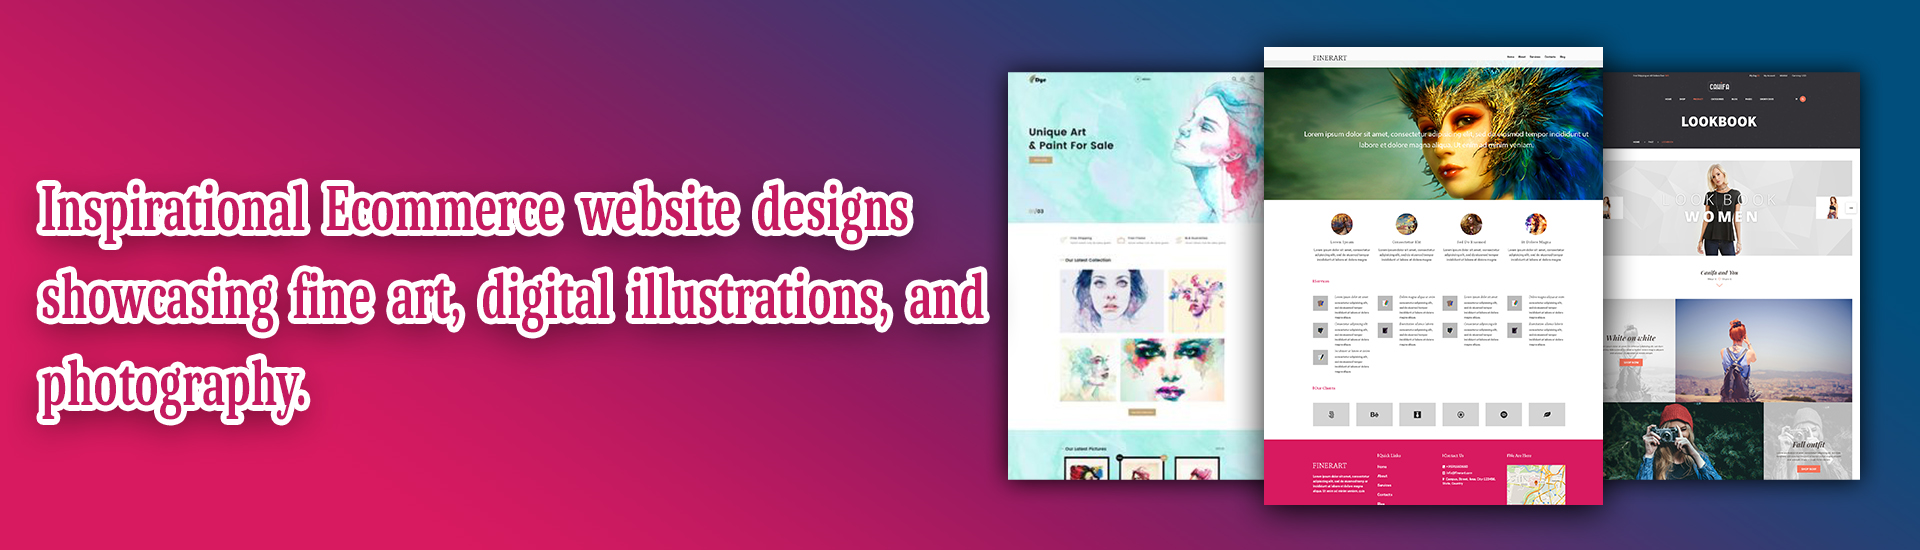 Art-and-Photography-Ecommerce-Website-Designs